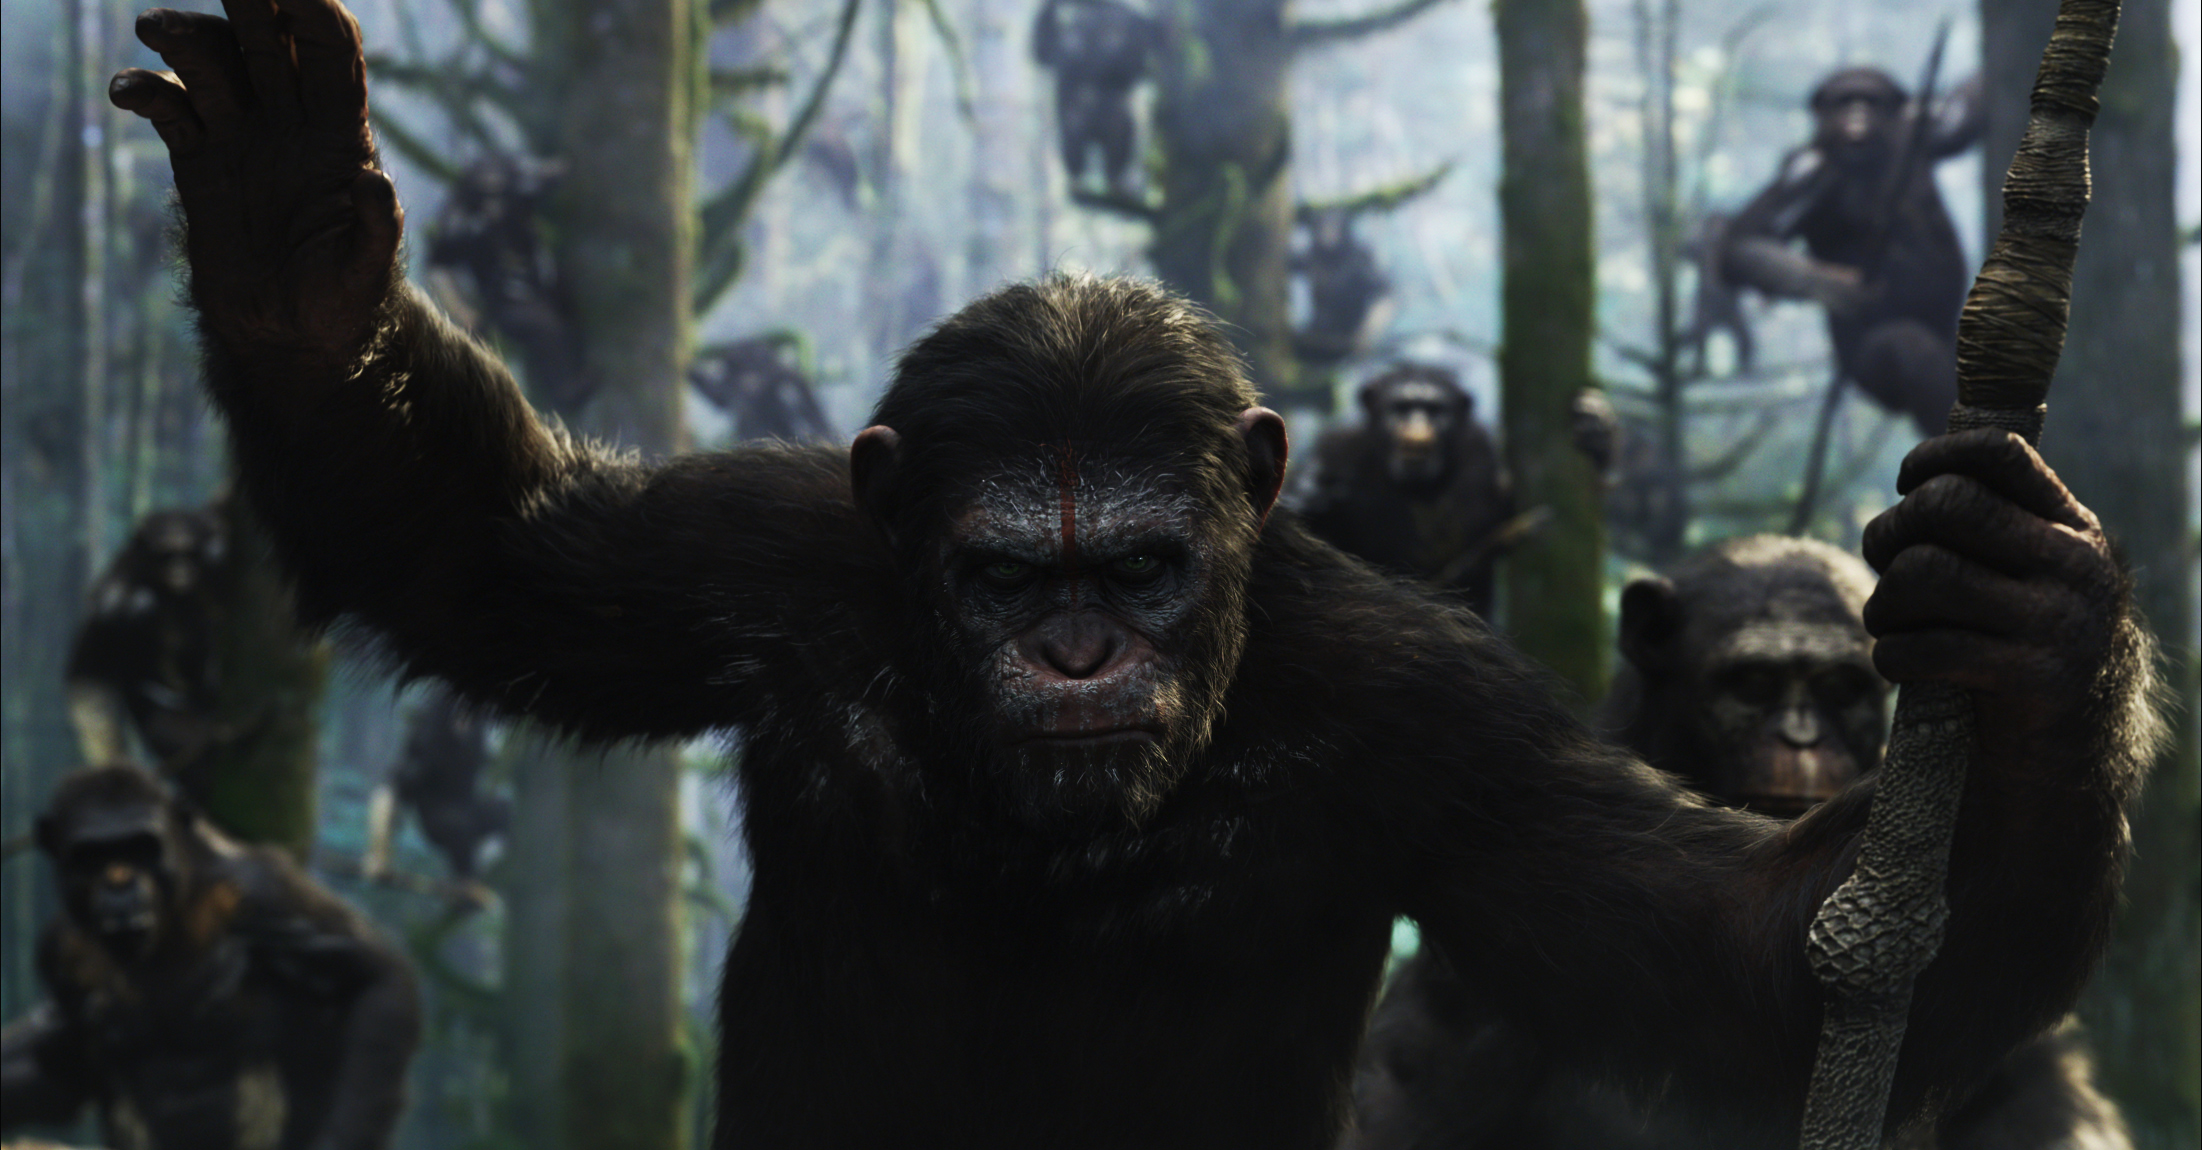 Filmpremiere: Dawn of the Planet of the Apes